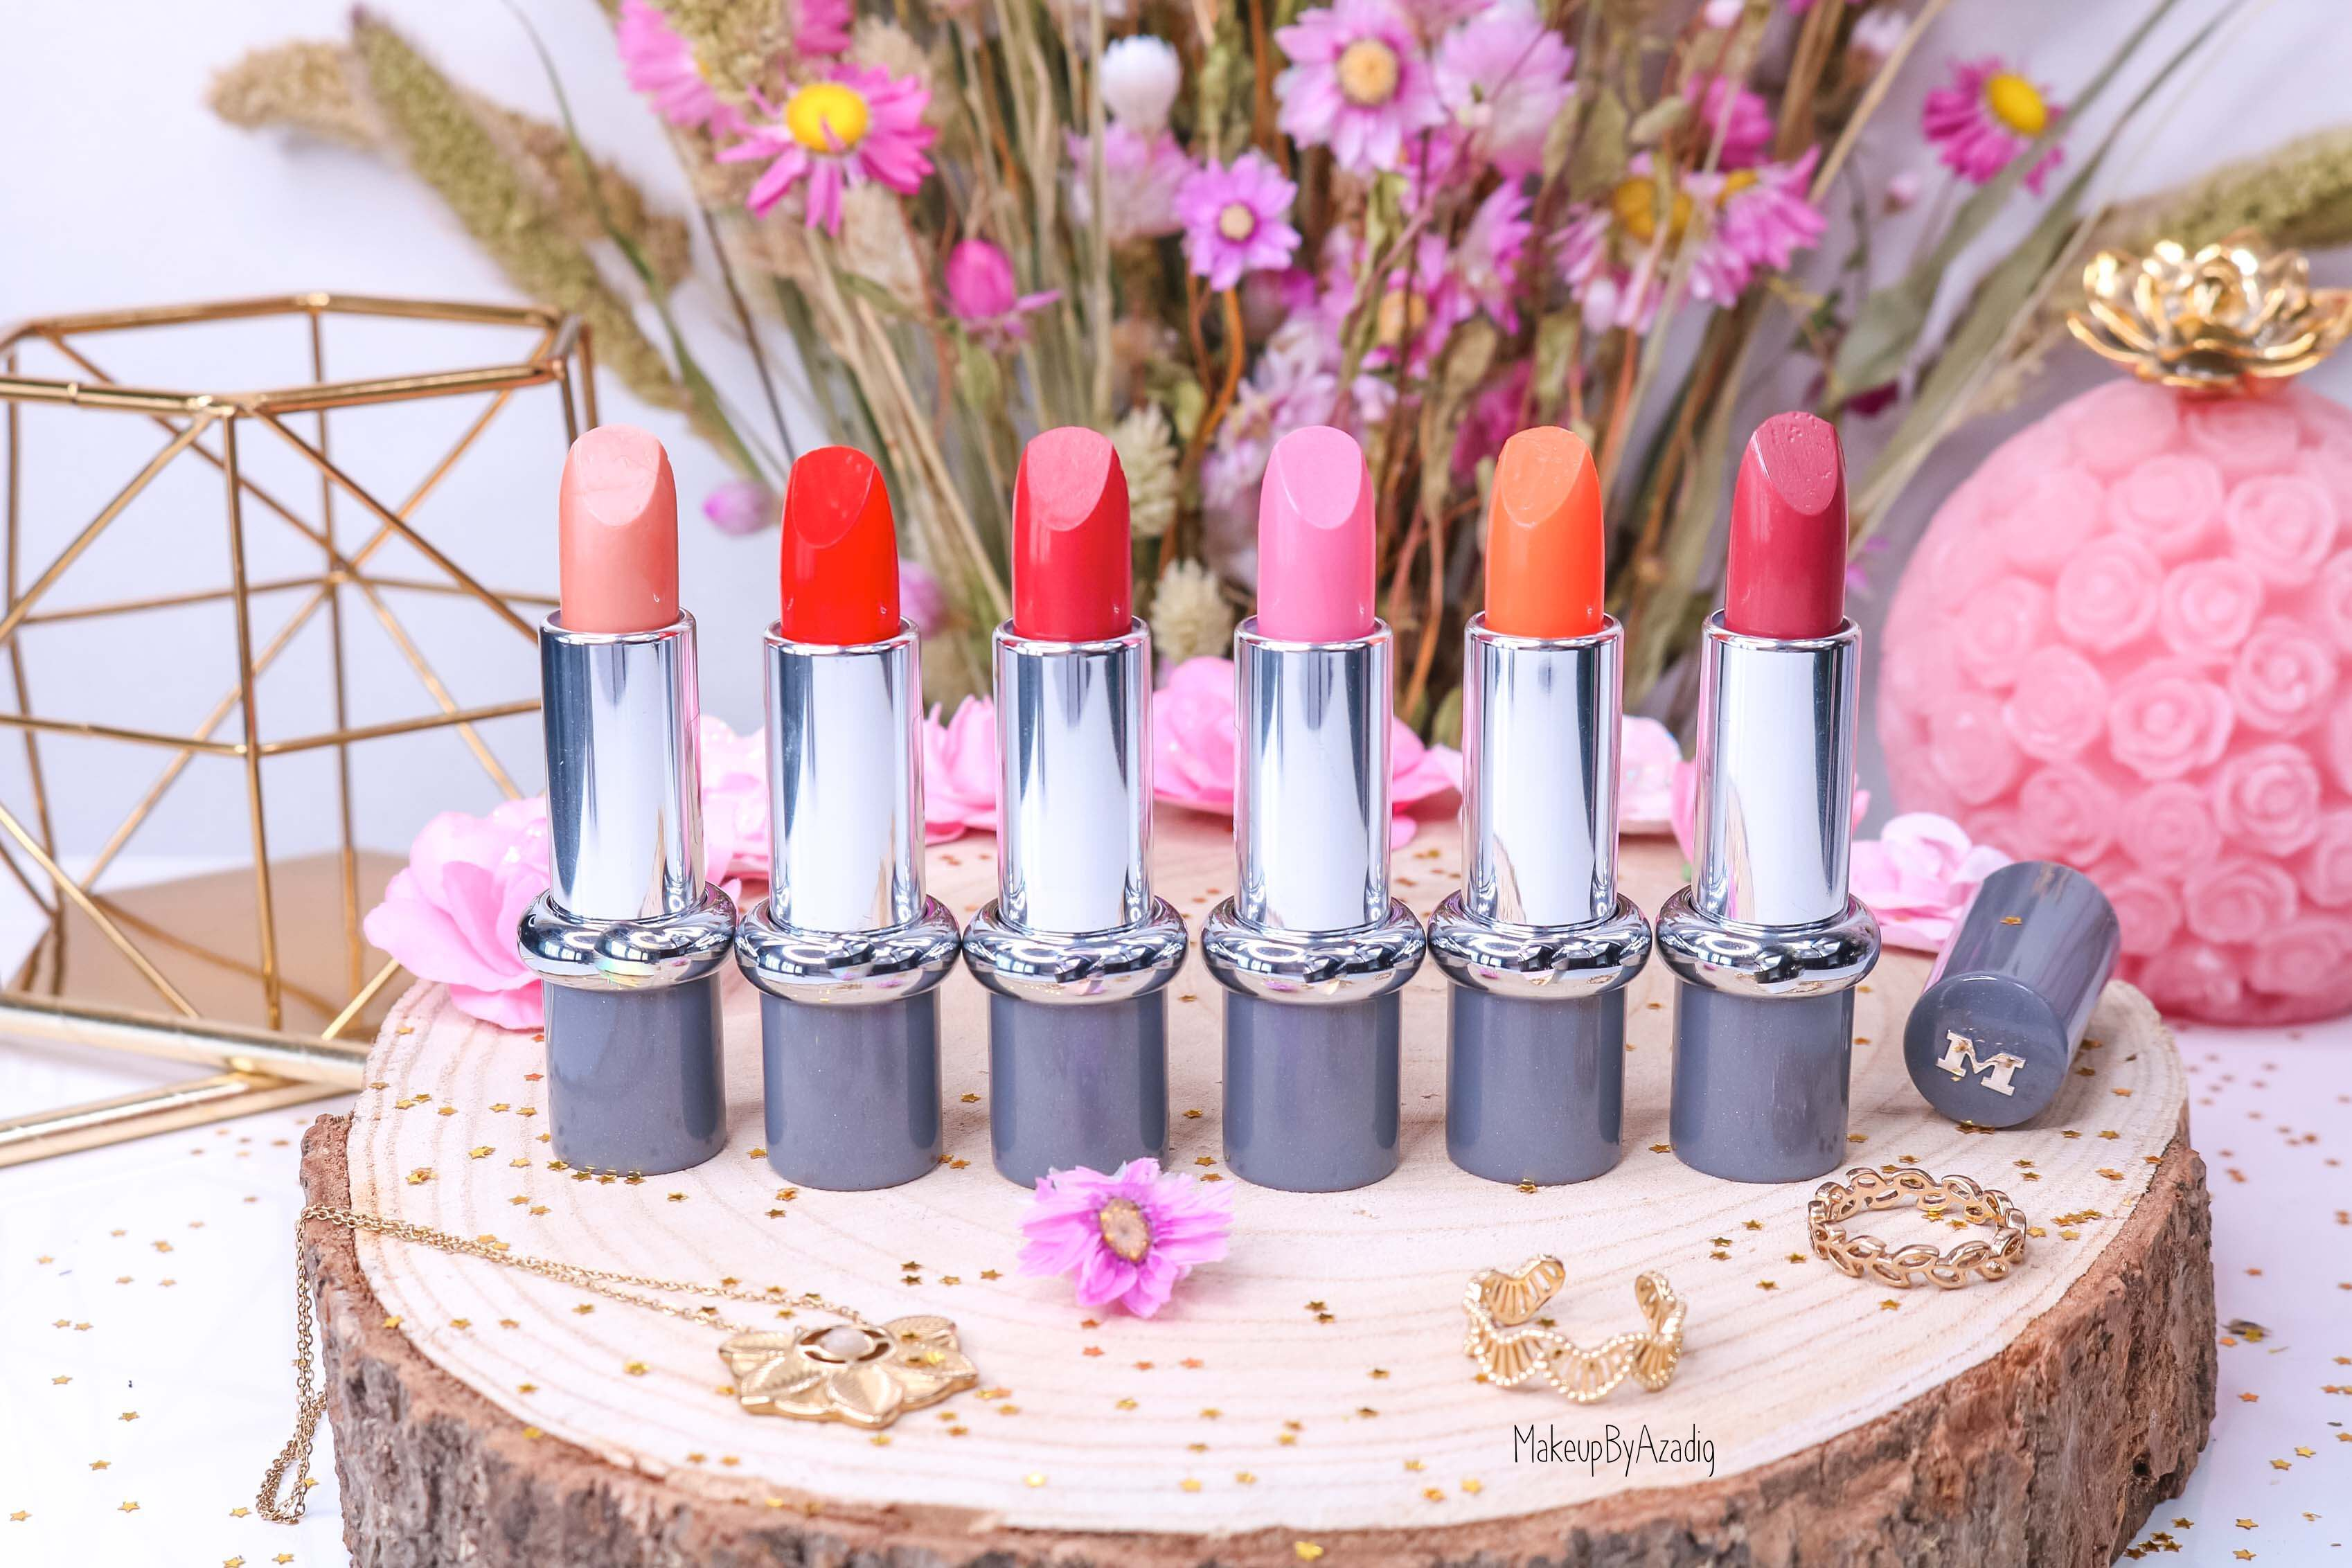 revue-rouge-a-levres-mavala-collection-sunlight-tendance-printemps-ete-2019-2020-monoprix-paris-makeupbyazadig-avis-prix-swatch-lipstick